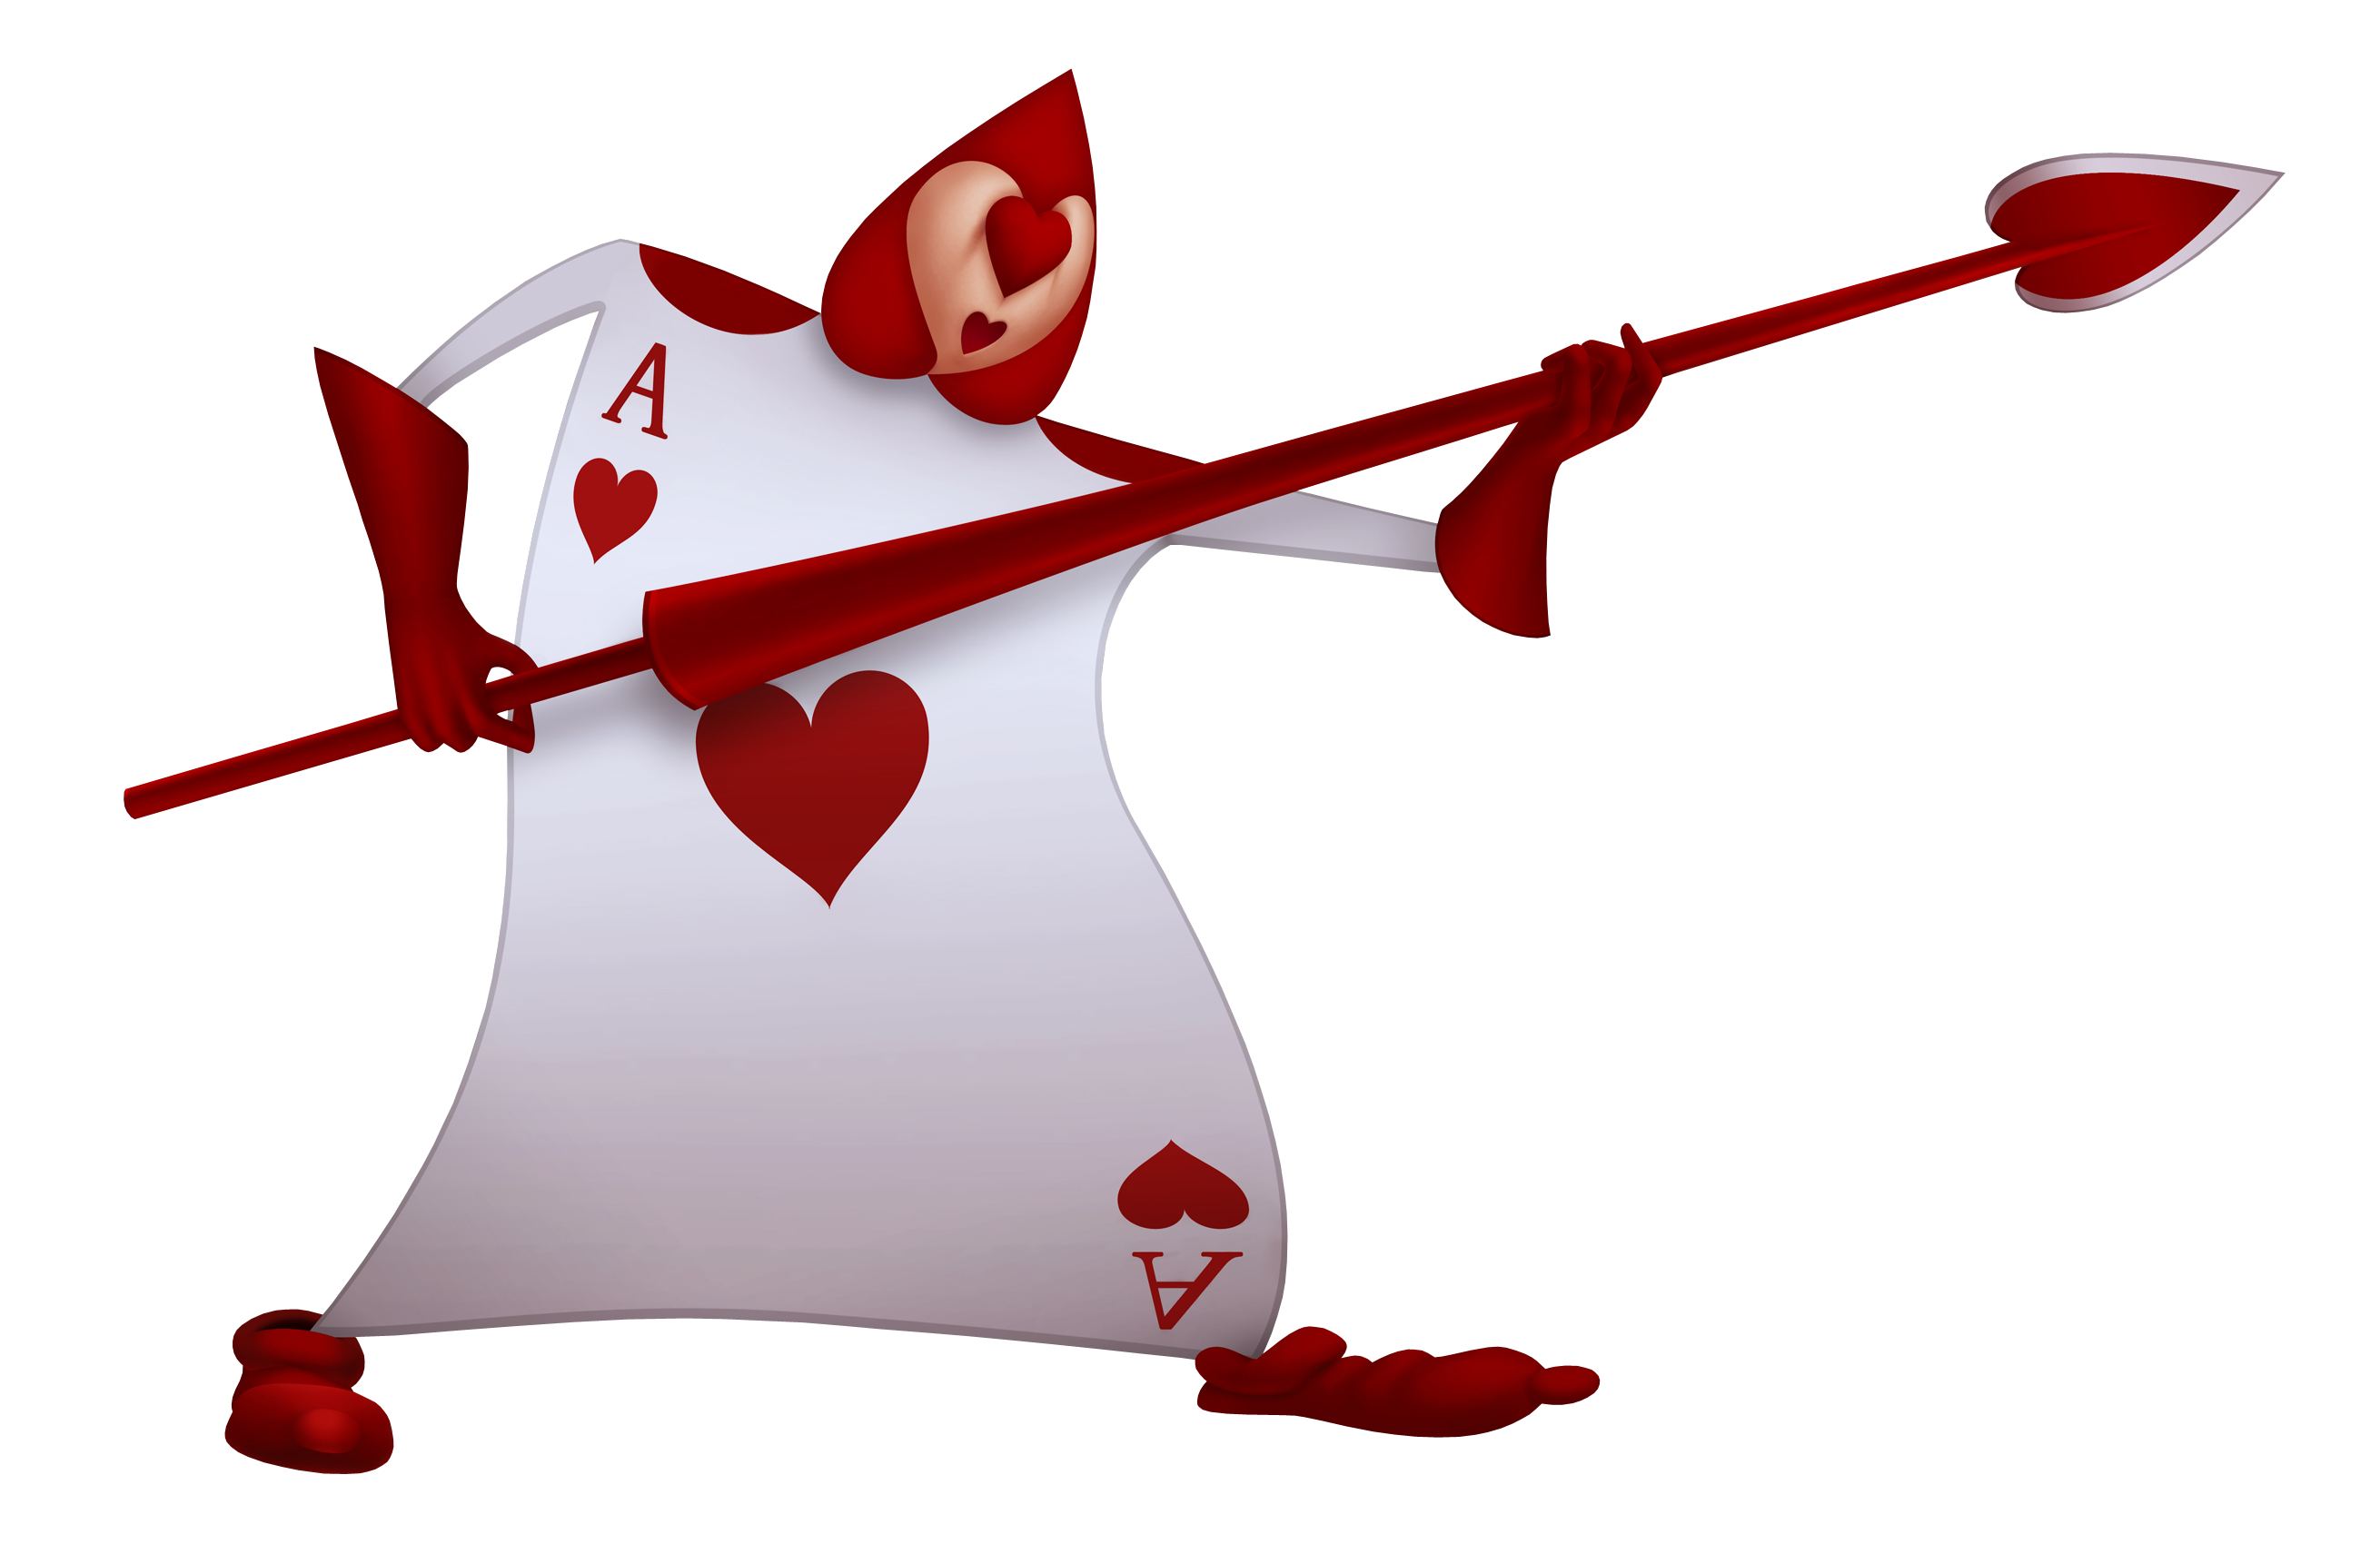 Queen of hearts card png. Image khrec disney wiki